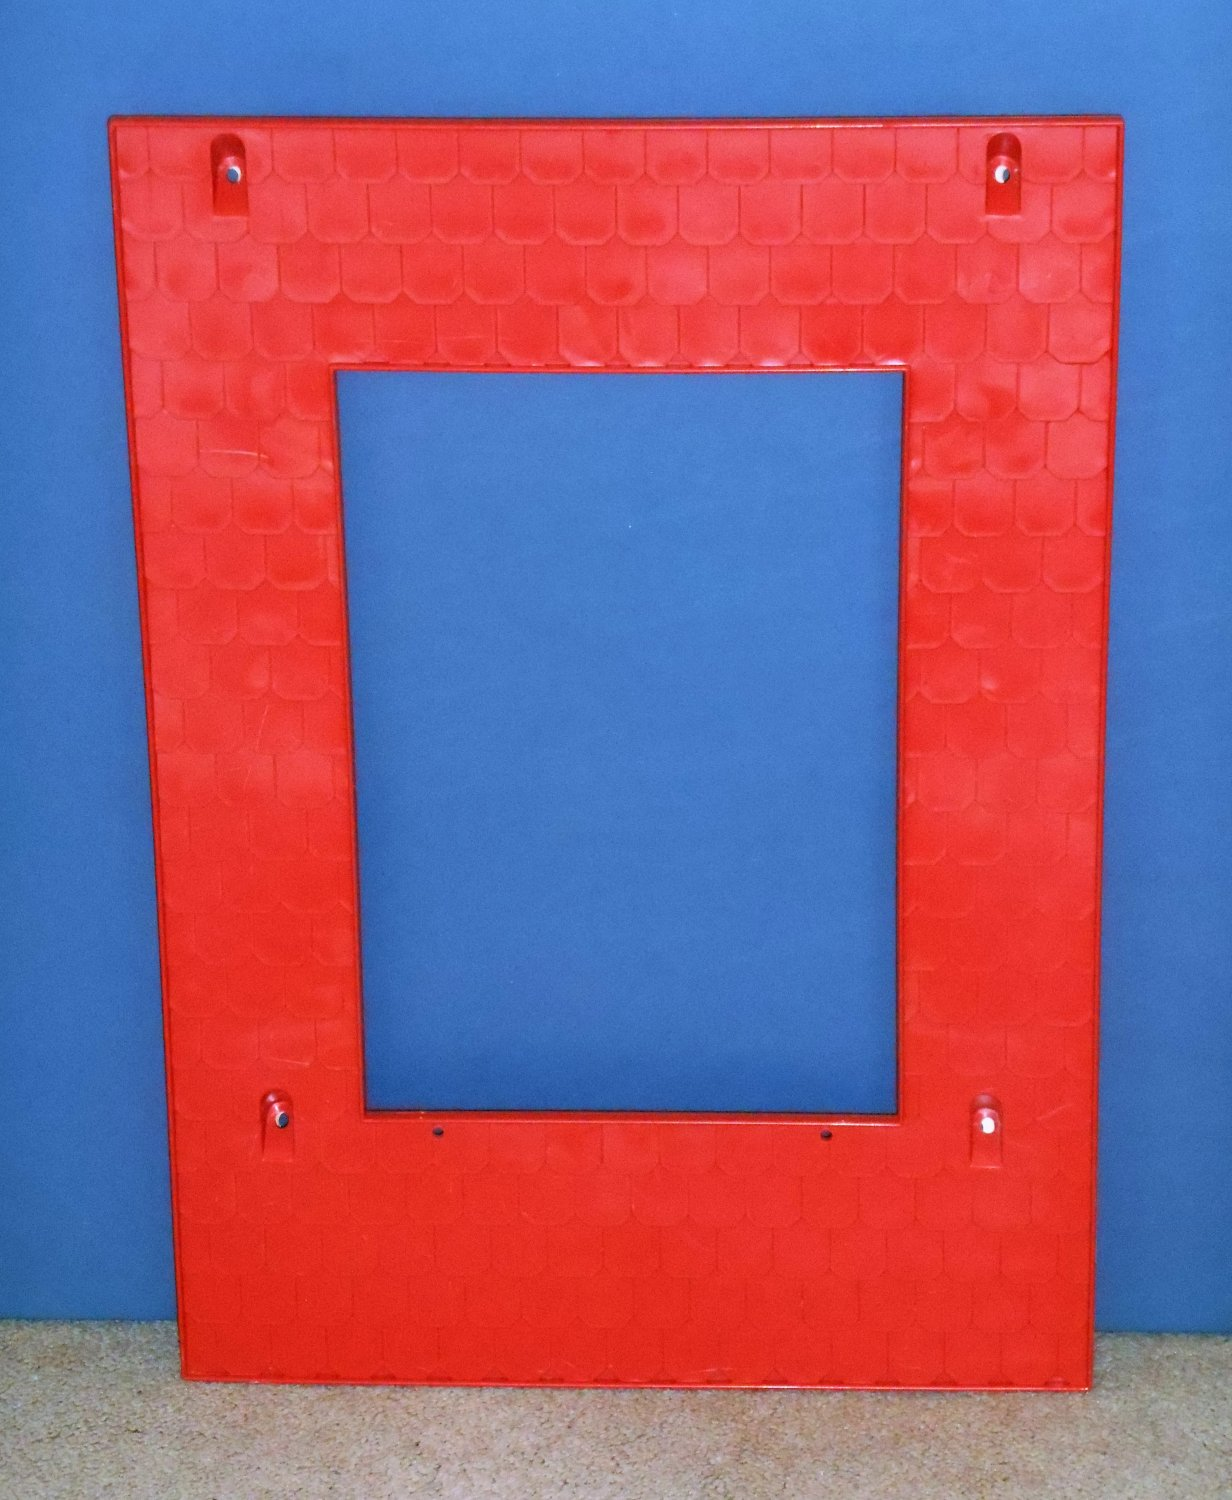 Red Roof Left or Right Side 2588-2089 Barbie A Frame Dream Doll House Dollhouse Replacement Parts